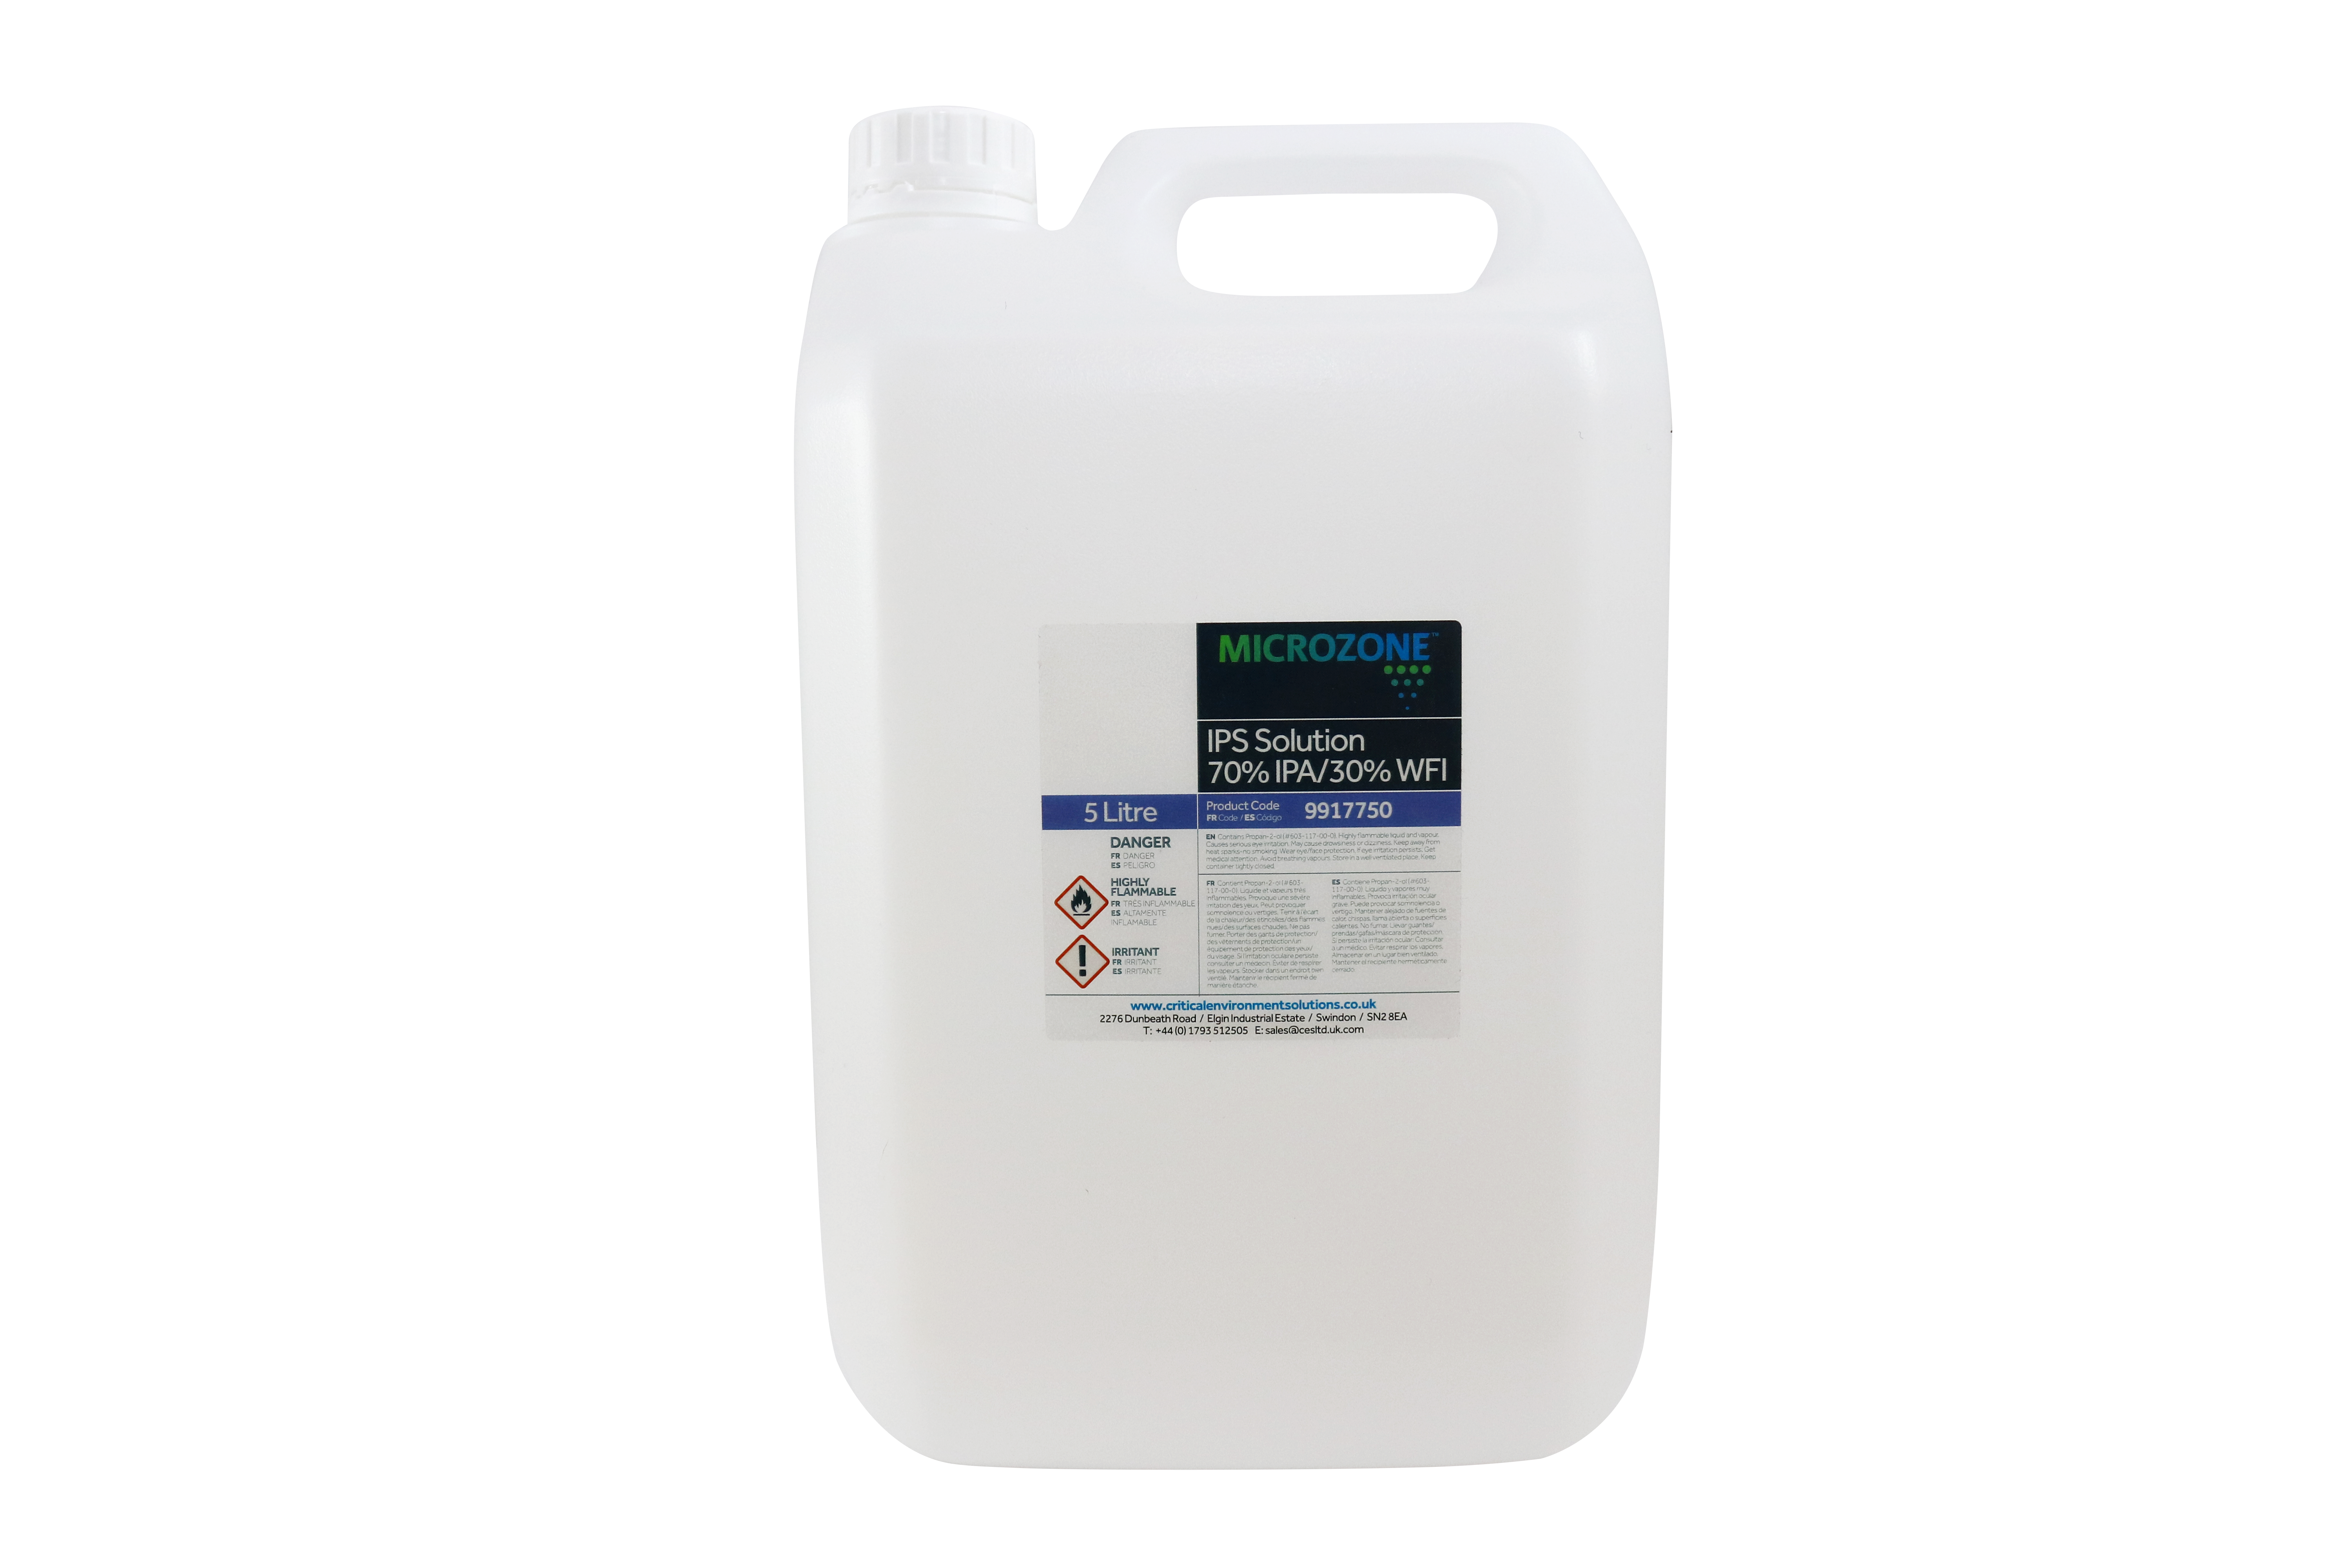 Wondrous Microzone Cleanroom 70 Ips Disinfectant Solution 5Ltr Download Free Architecture Designs Viewormadebymaigaardcom